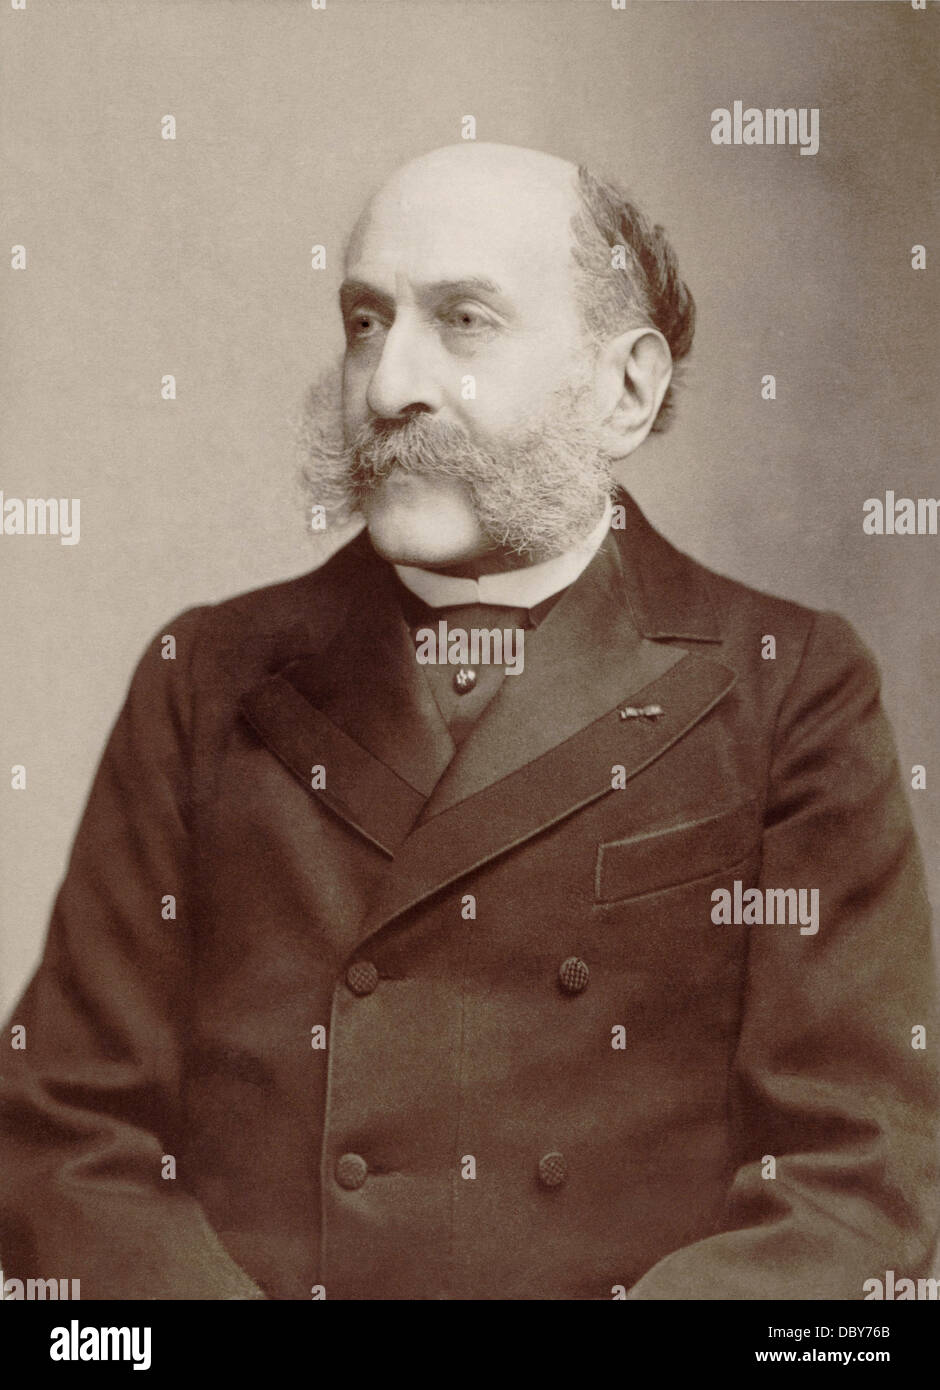 Georges Mathias (1826 - 1910), francese pianista e compositore. Foto Stock